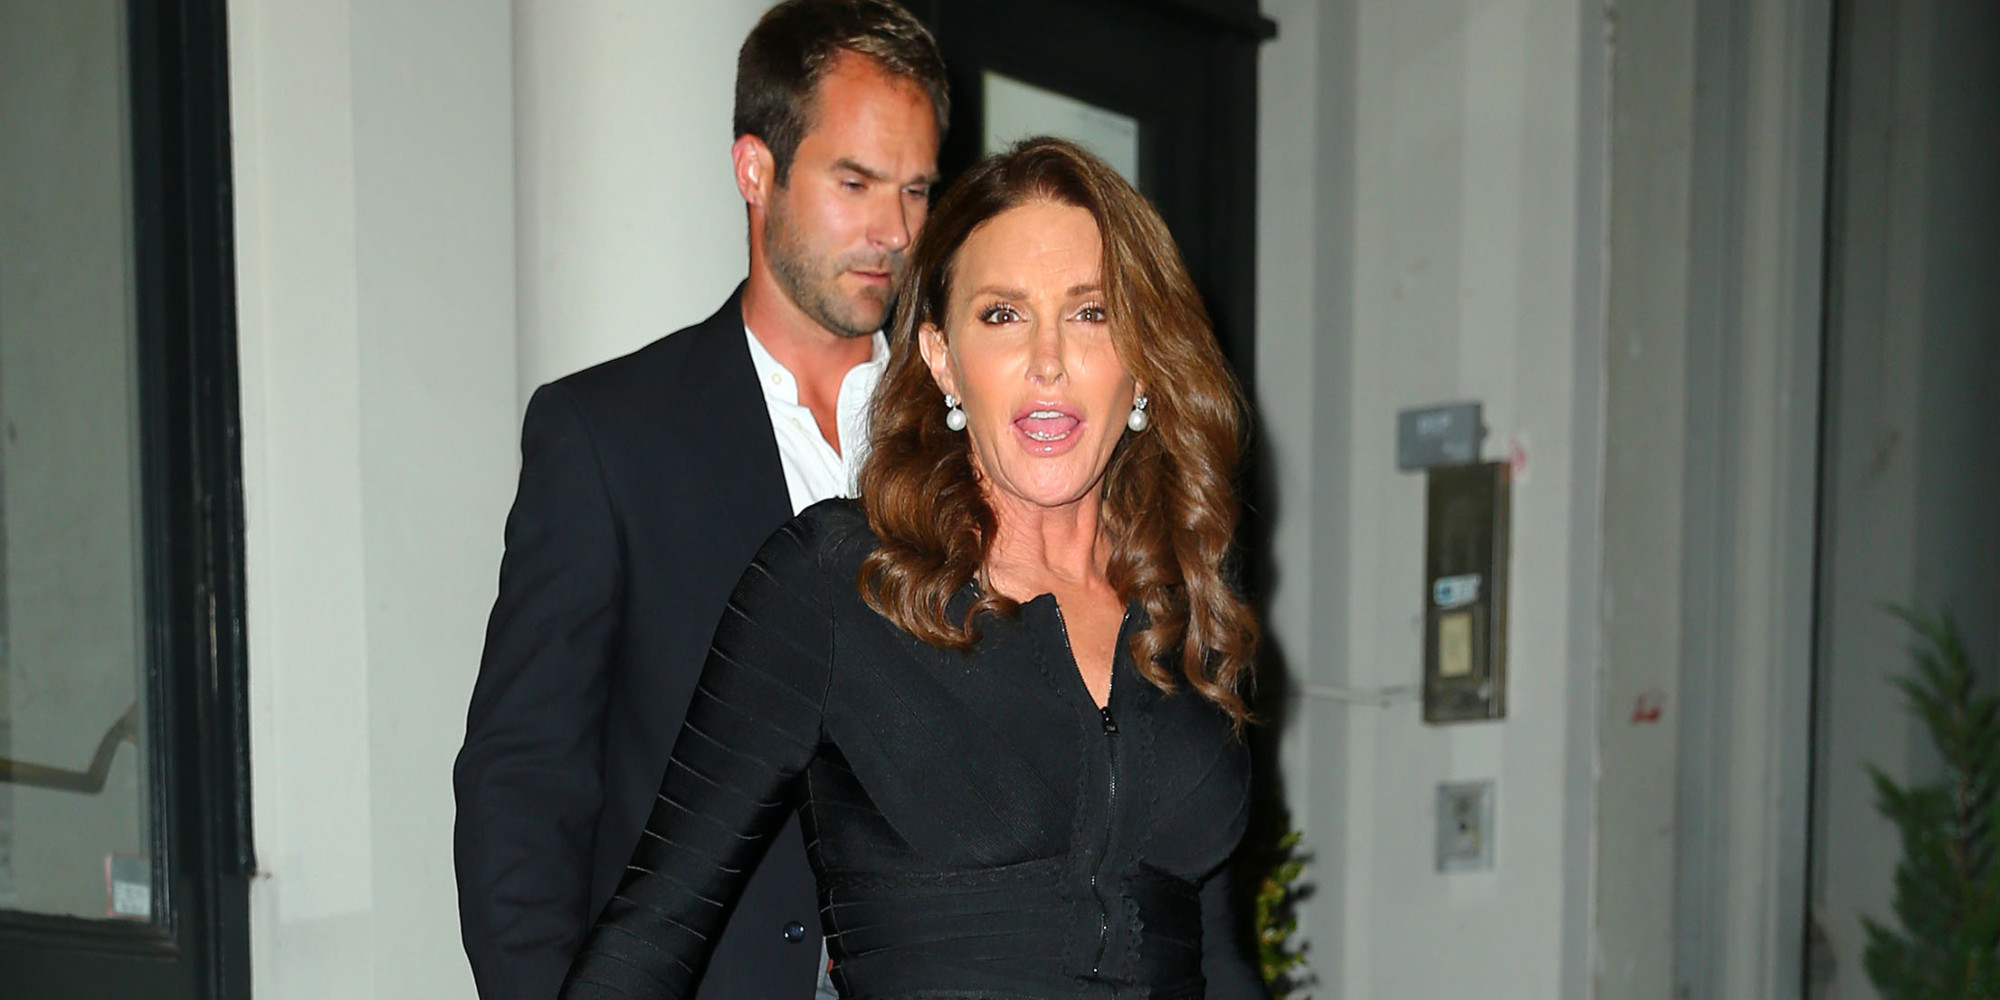 Caitlyn Jenner Takes A Cue From The Kardashians, Steps Out ... Daily News Bruce Jenner In A Dress Photos